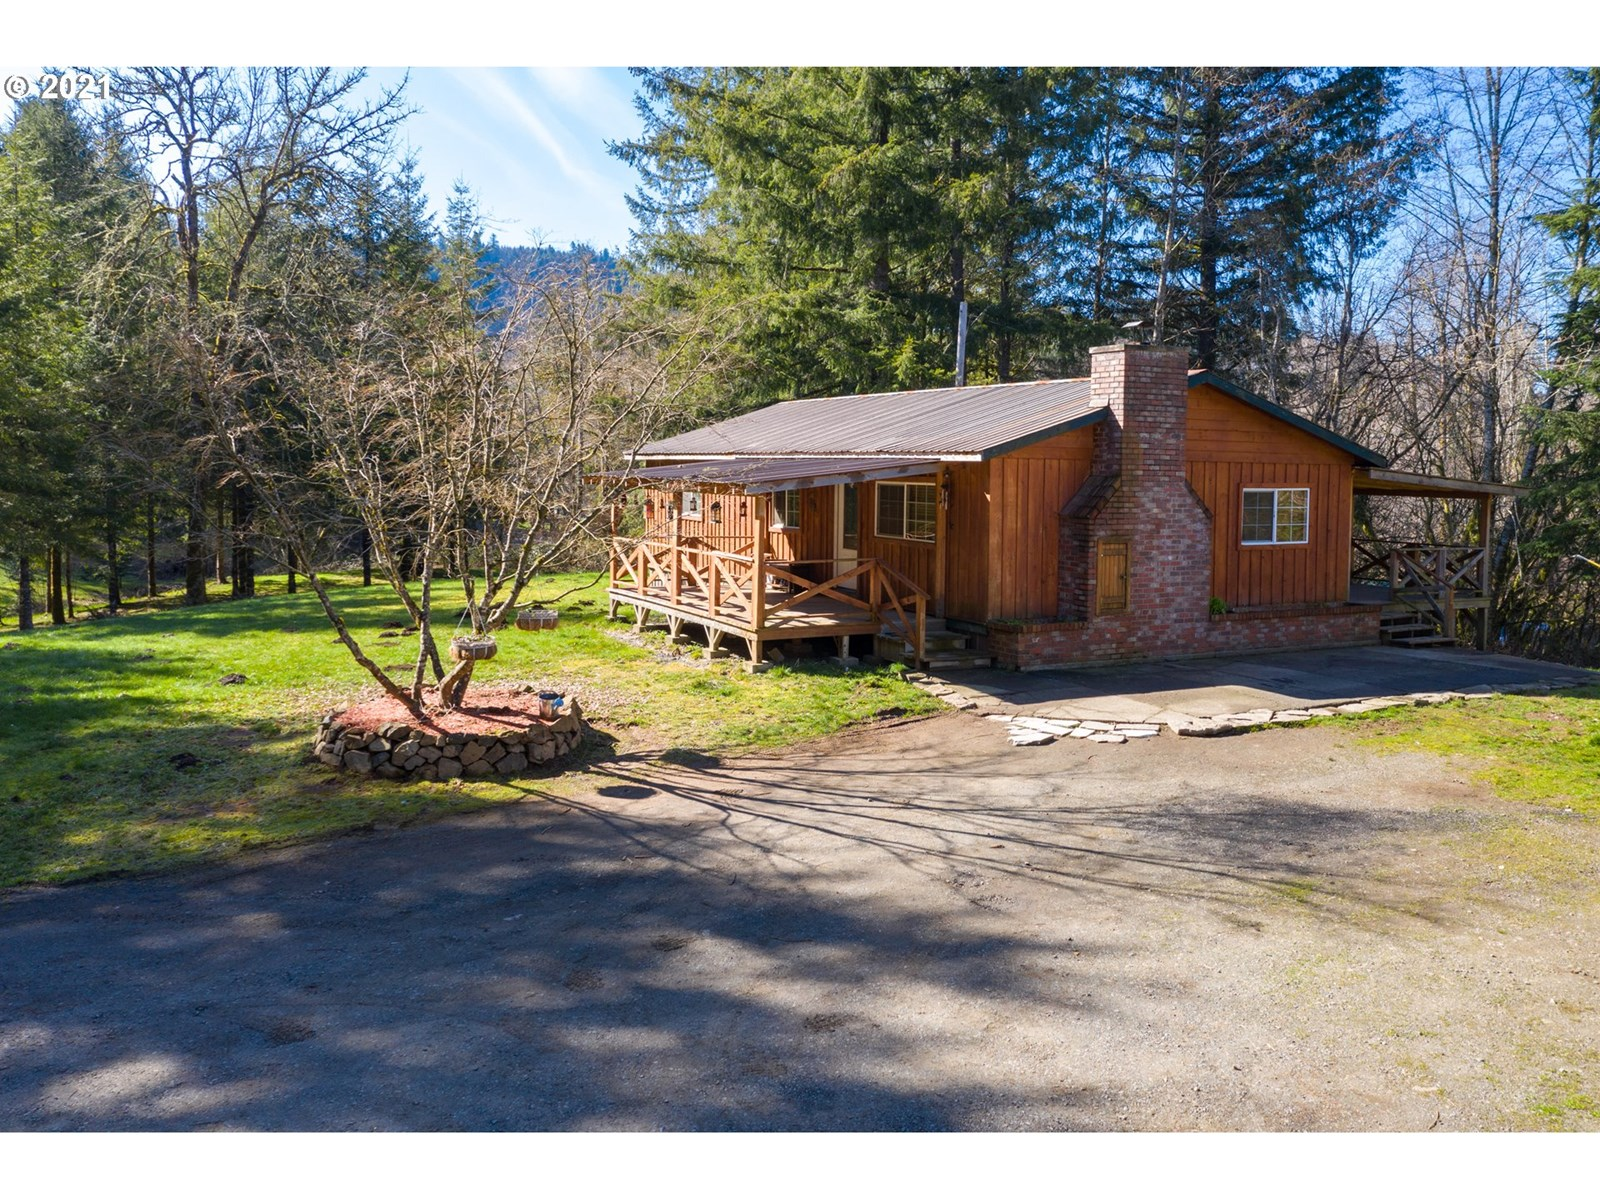 Amazing 5.74 acre ranch home with 960 sq/ft shop/detached ga